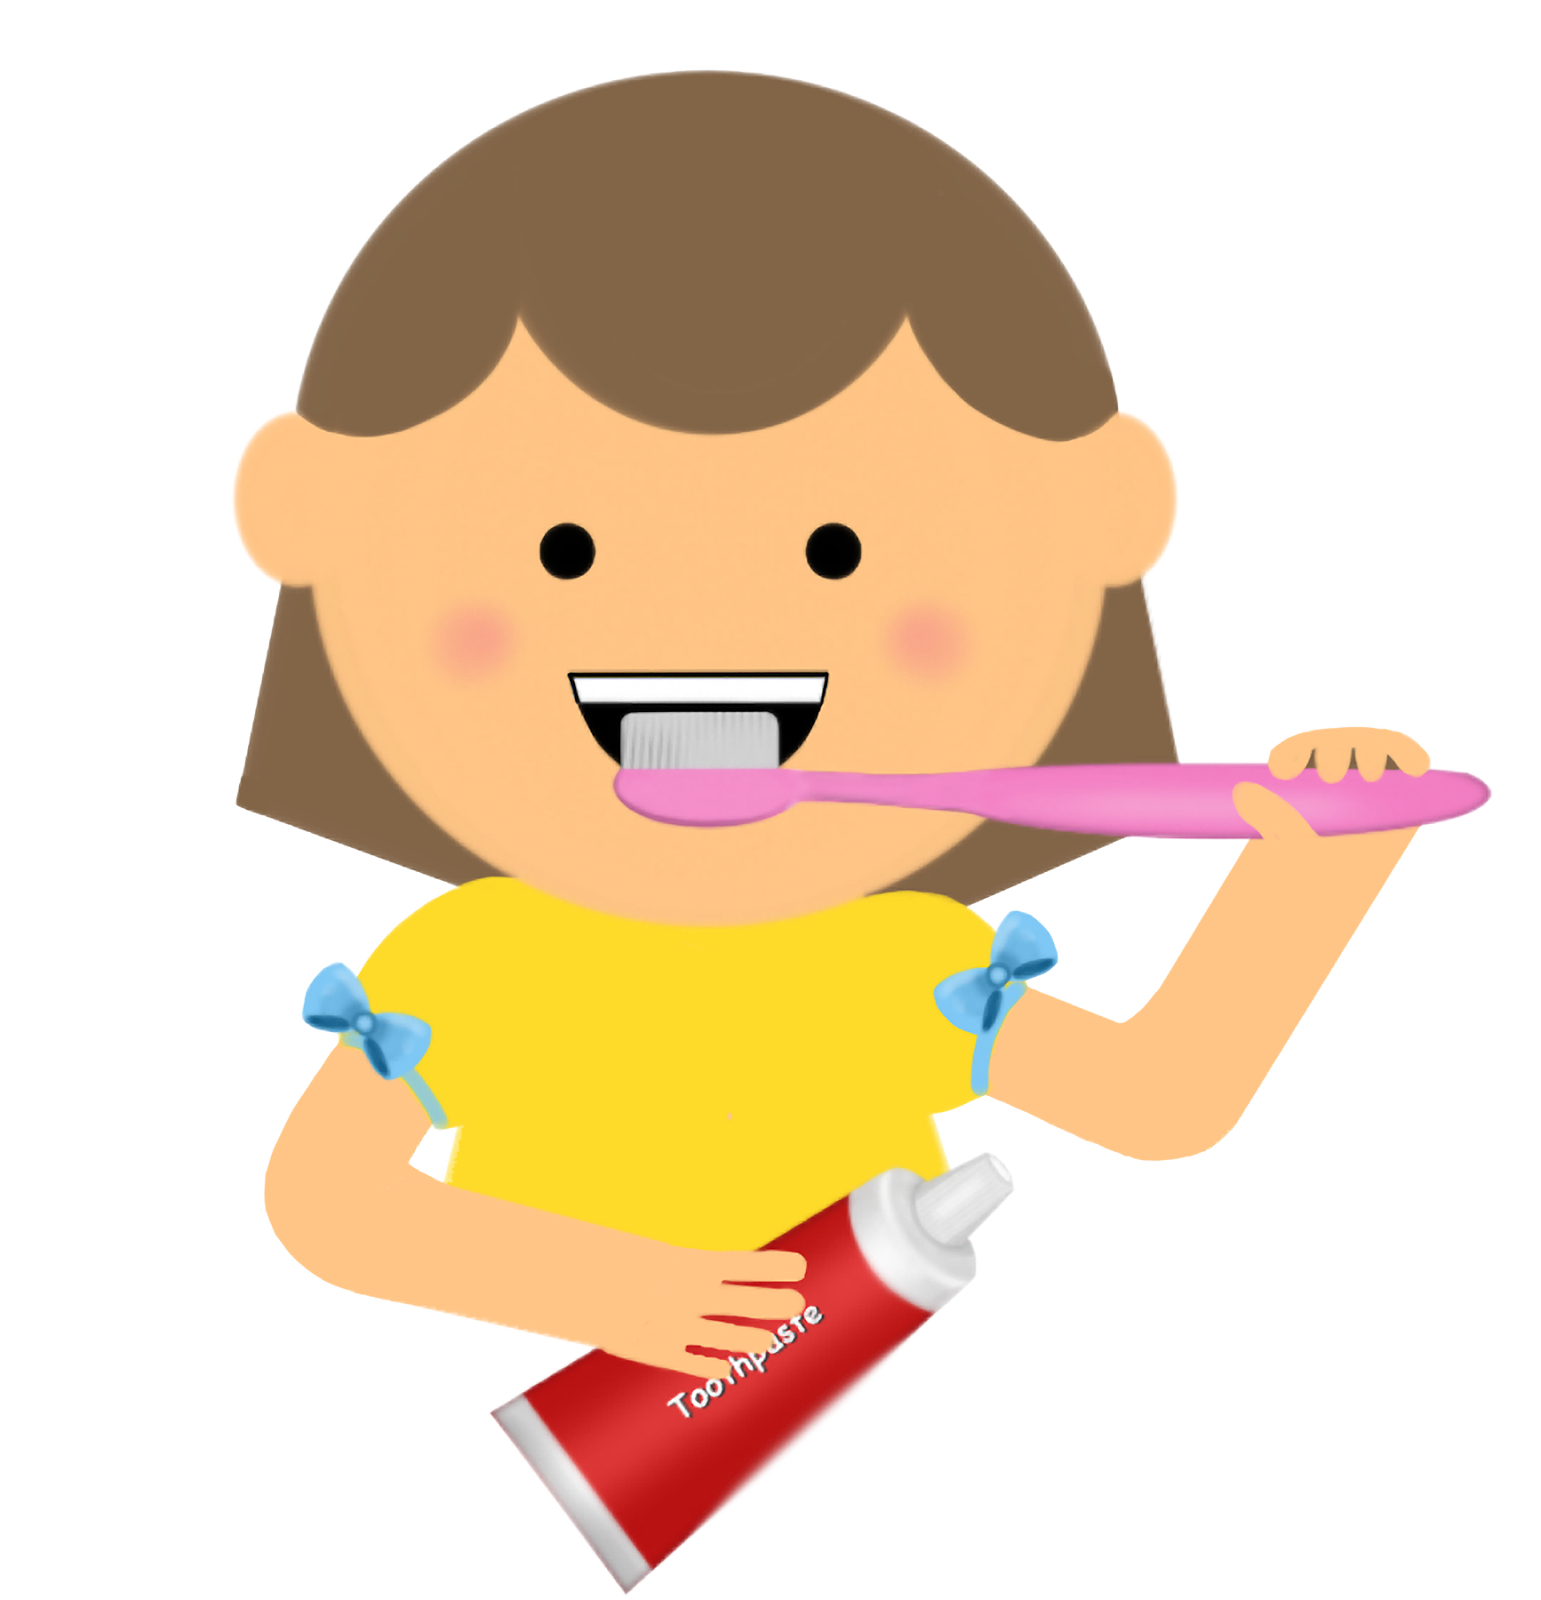 picture freeuse download Kid brushing teeth clipart. Boy letters format regarding.